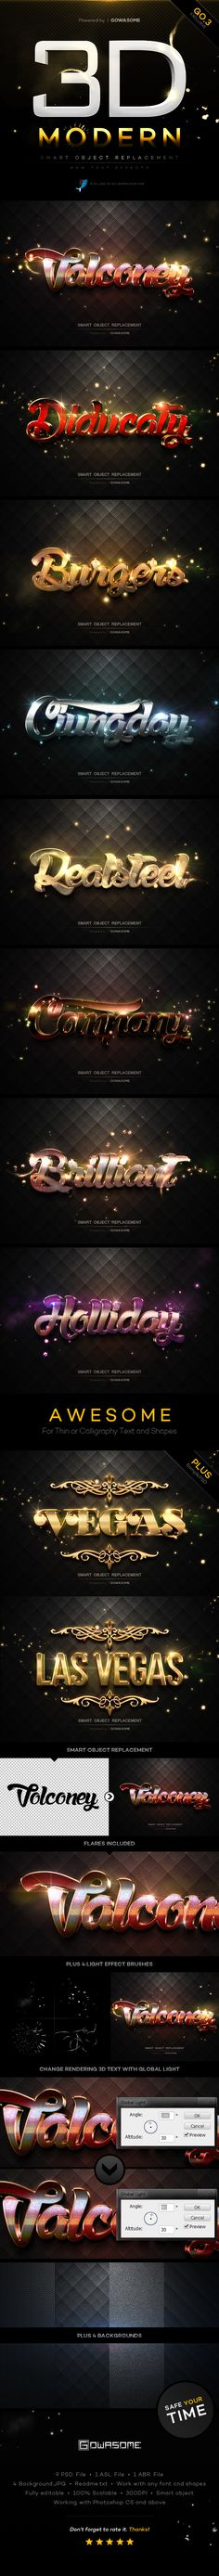 Modern 3D Text Effects GO.3 #photoshop Download here: http://graphicriver.net/item/modern-3d-text-effects-go3/10193239?ref=ksioks